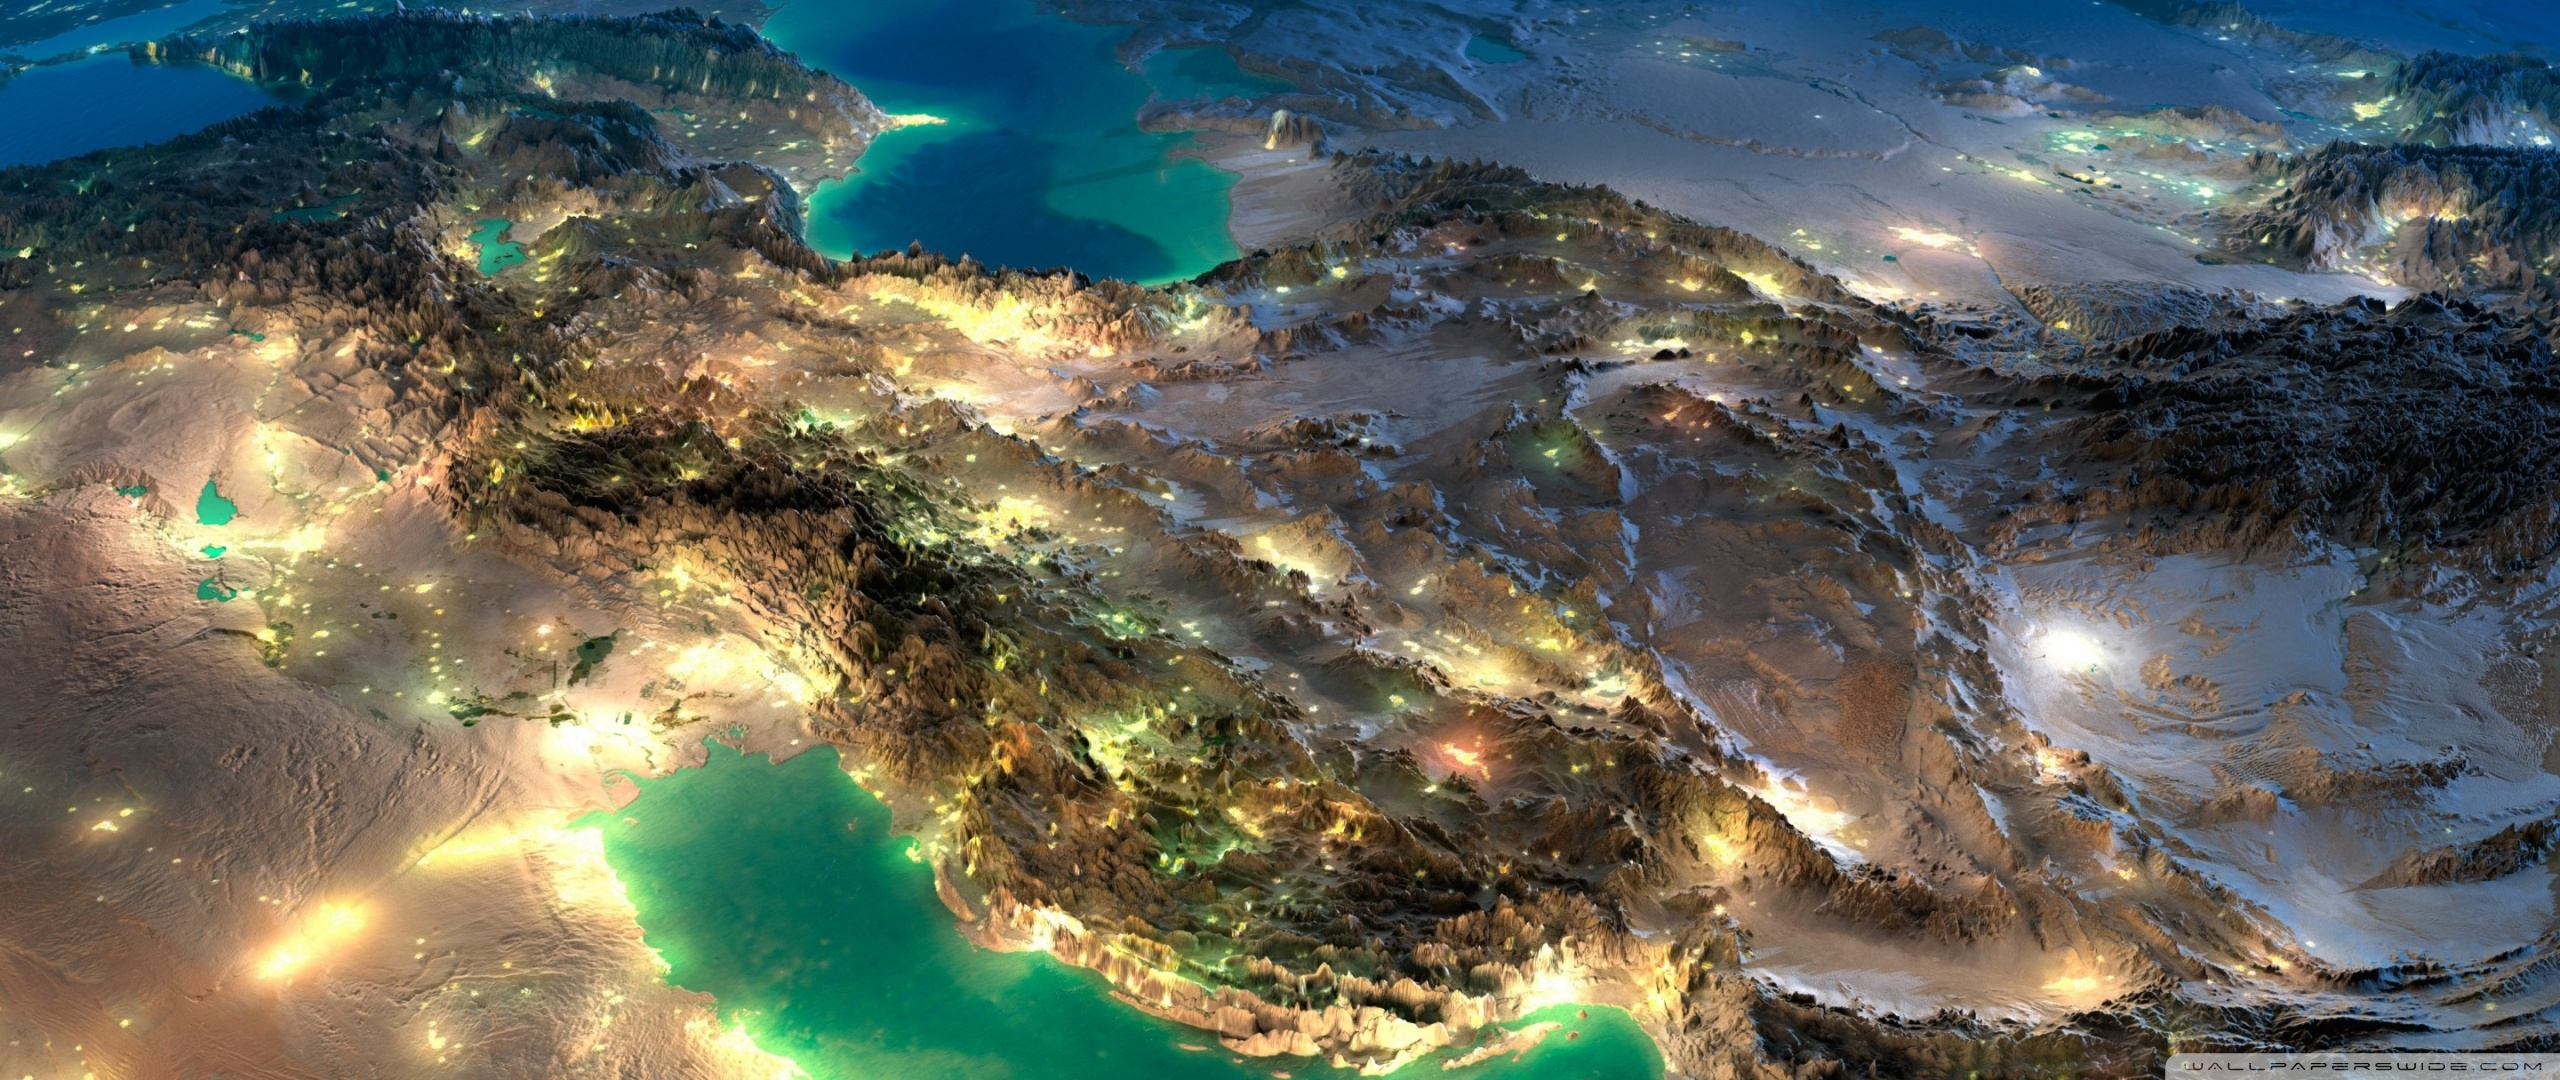 Very Cute Wallpapers For Mobile 240x320 Very Nice Satellite Images Of Iran Hd Wallpaper Hd